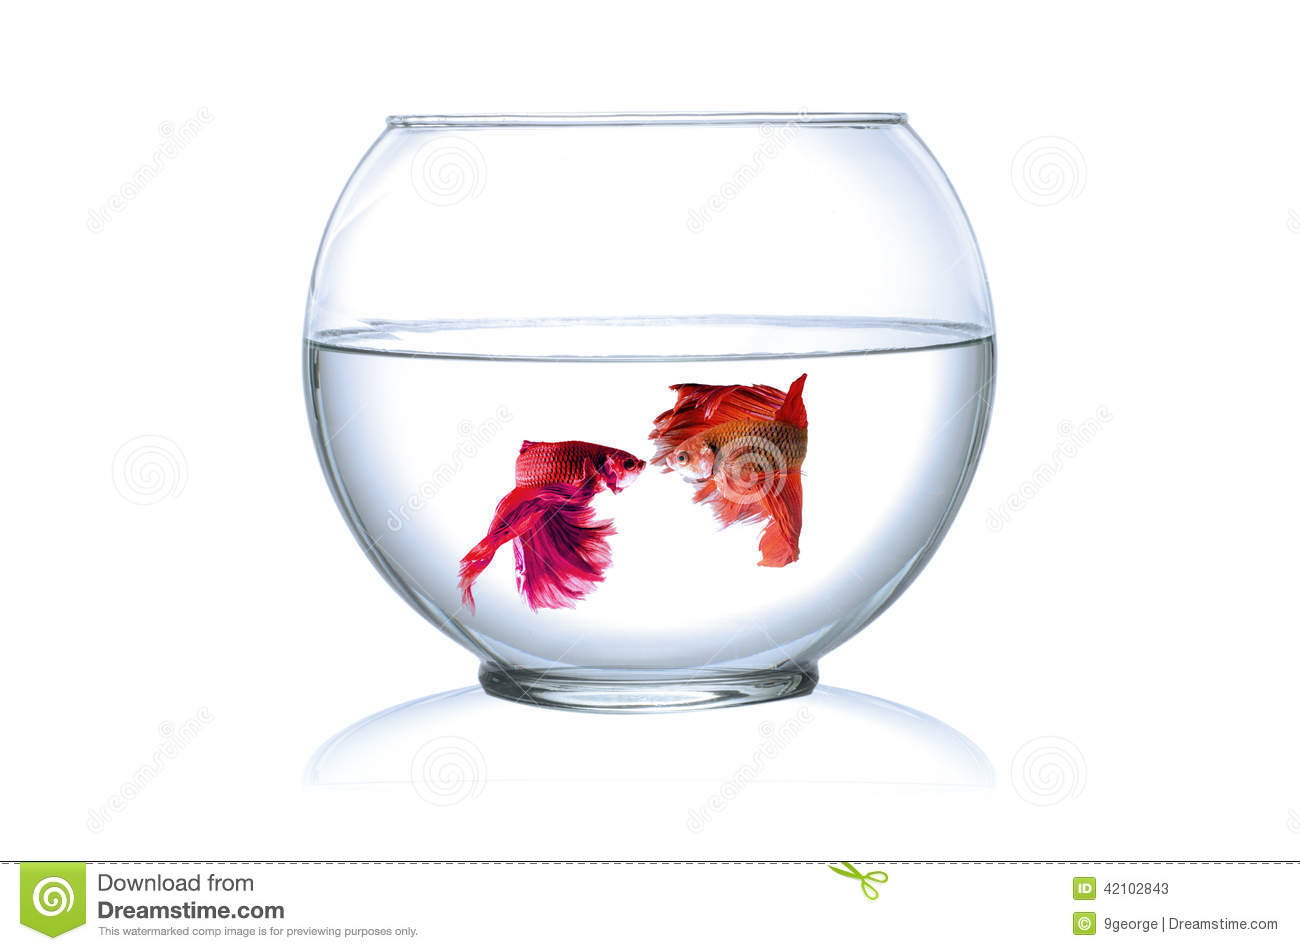 Siamese fighting fish in fish bowl stock image image for Best fish for fish bowl